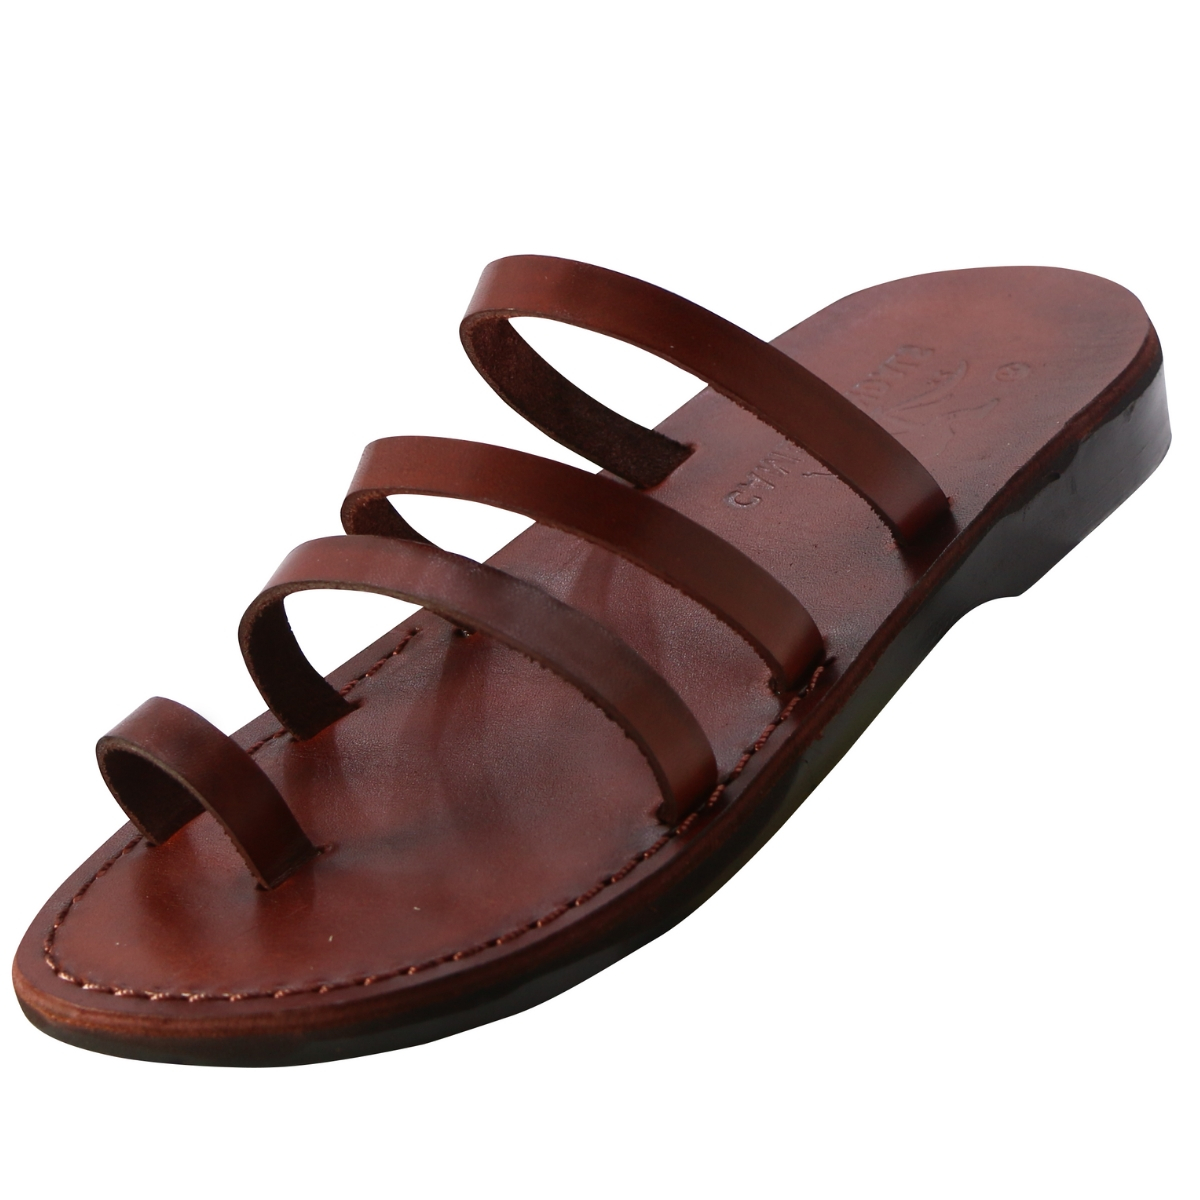 1bc9eb0aa41b Buy Three Strap Slip on Handmade Sandals - Avia